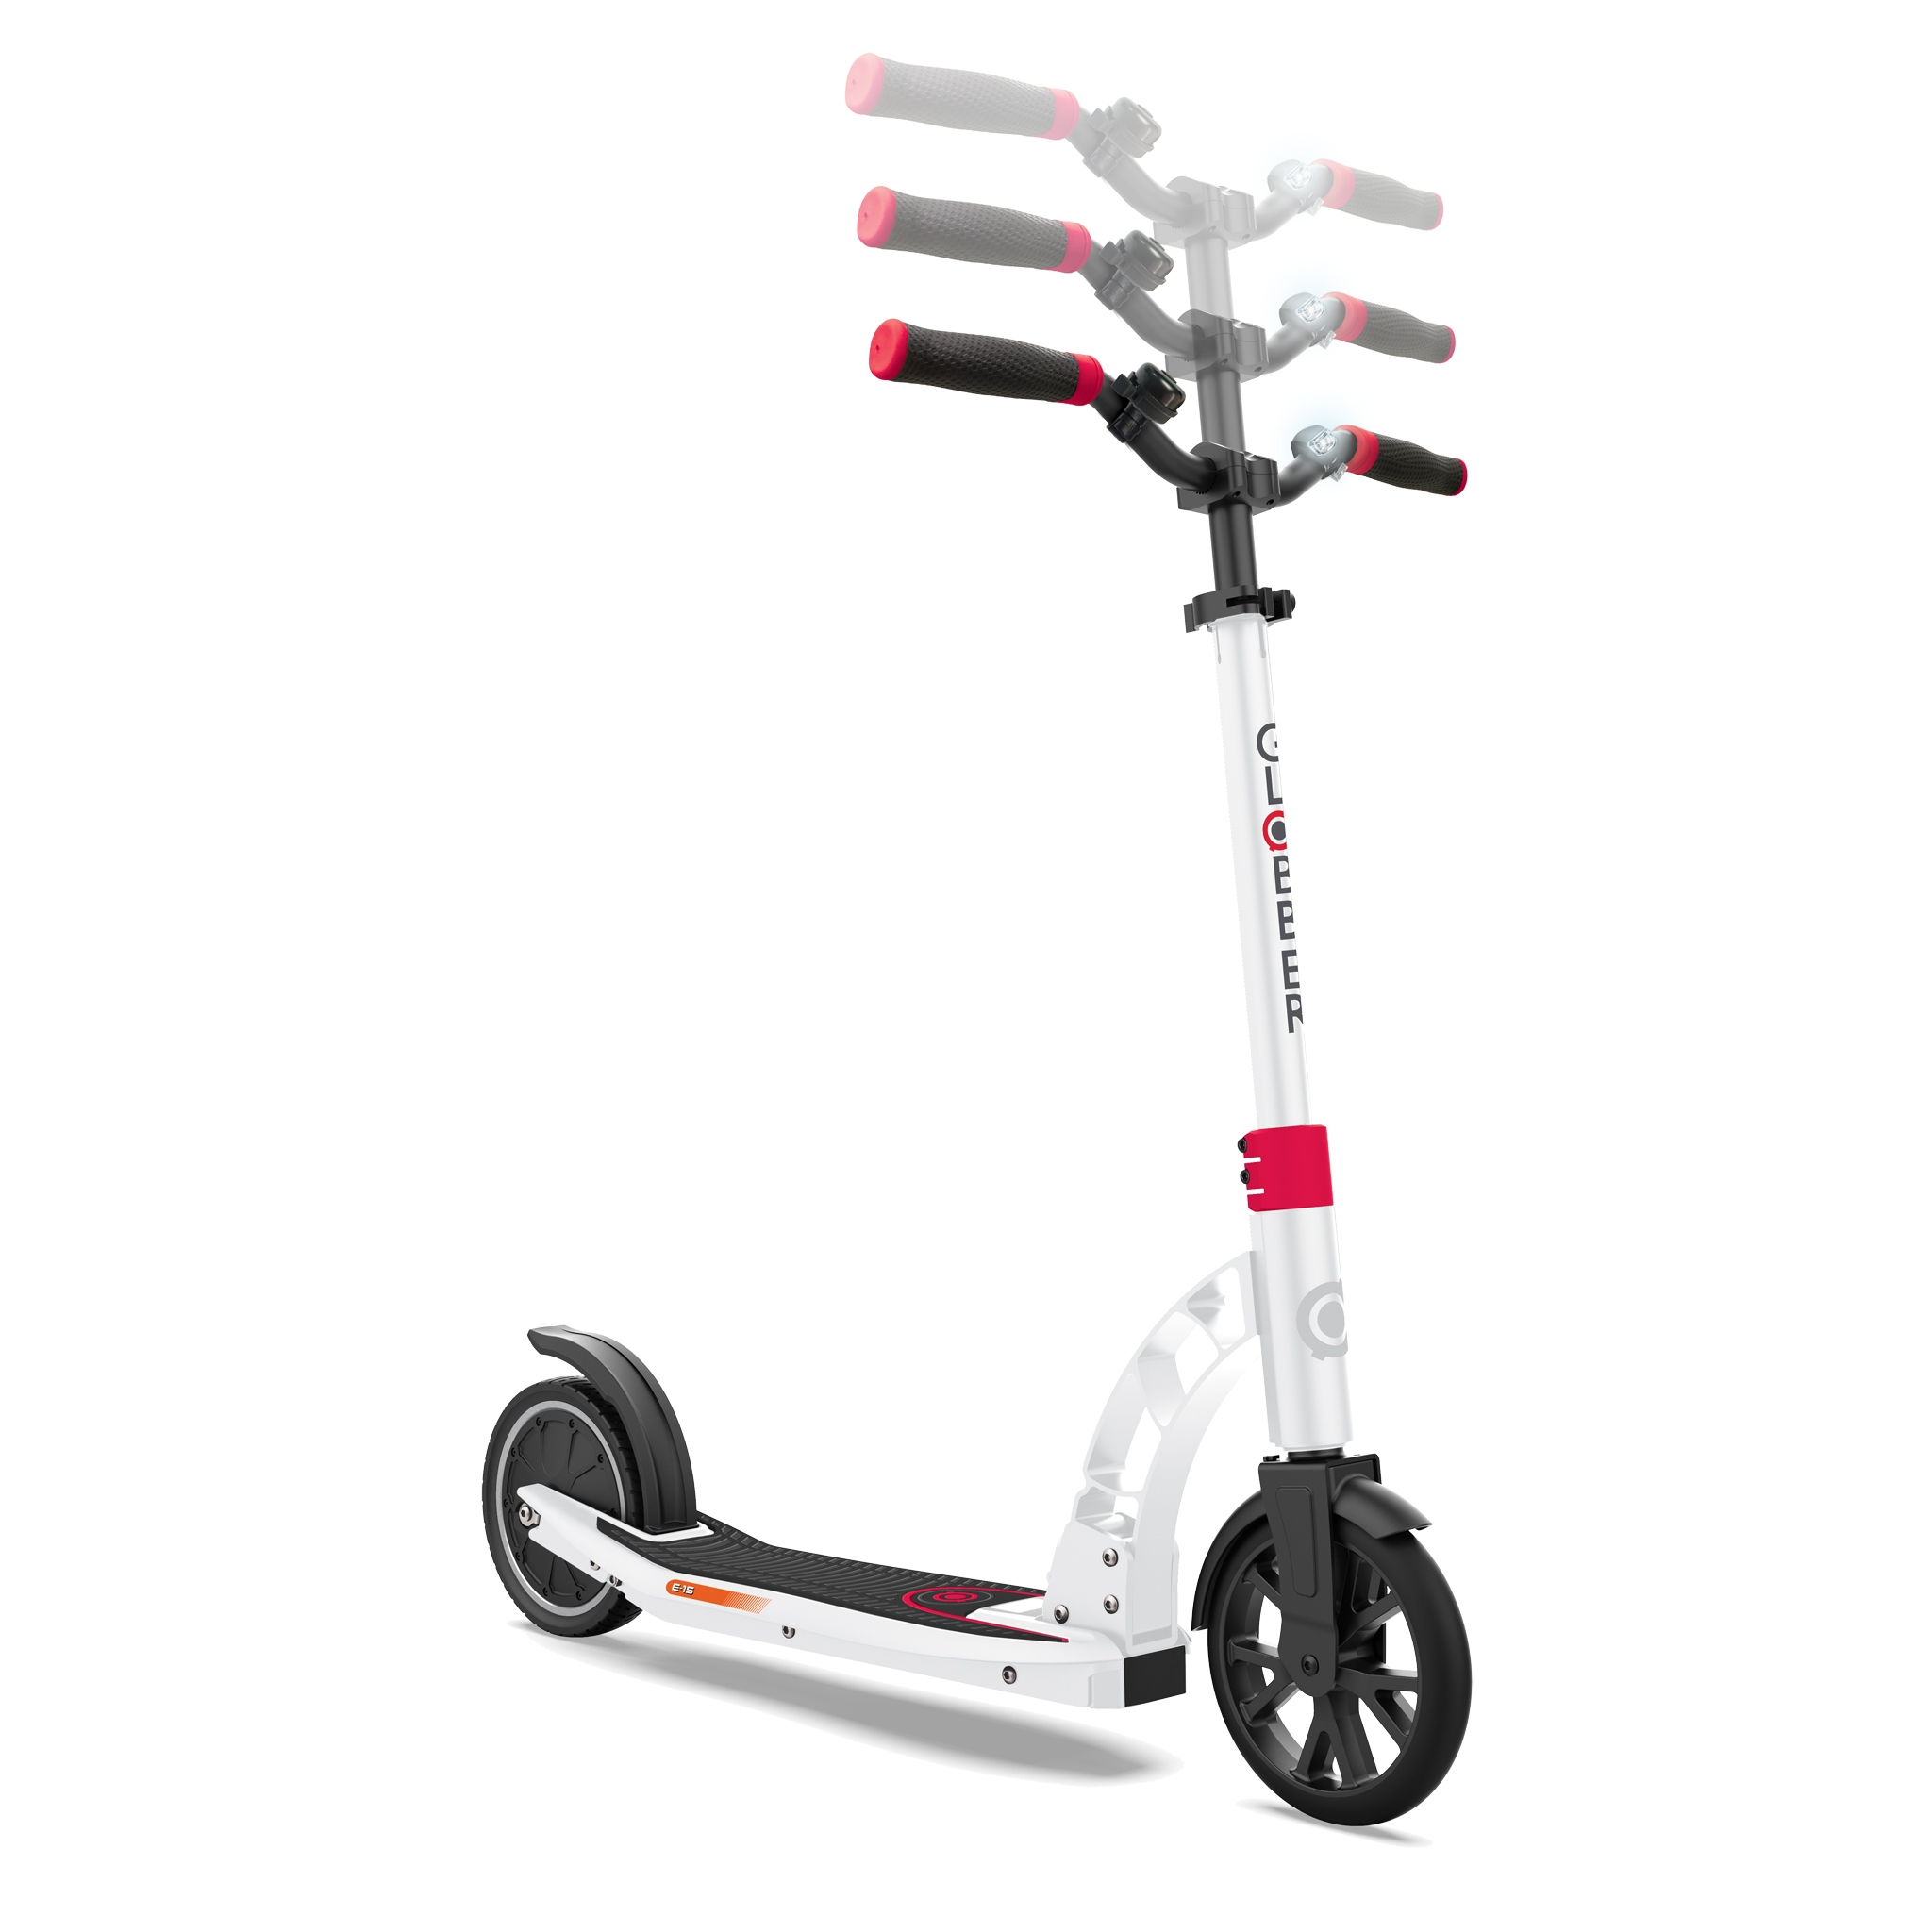 Globber-ONE-K-E-MOTION-15-foldable-electric-scooter-for-teens-and-young-adults-aged-14+-adjustable-e-scooter-white-red